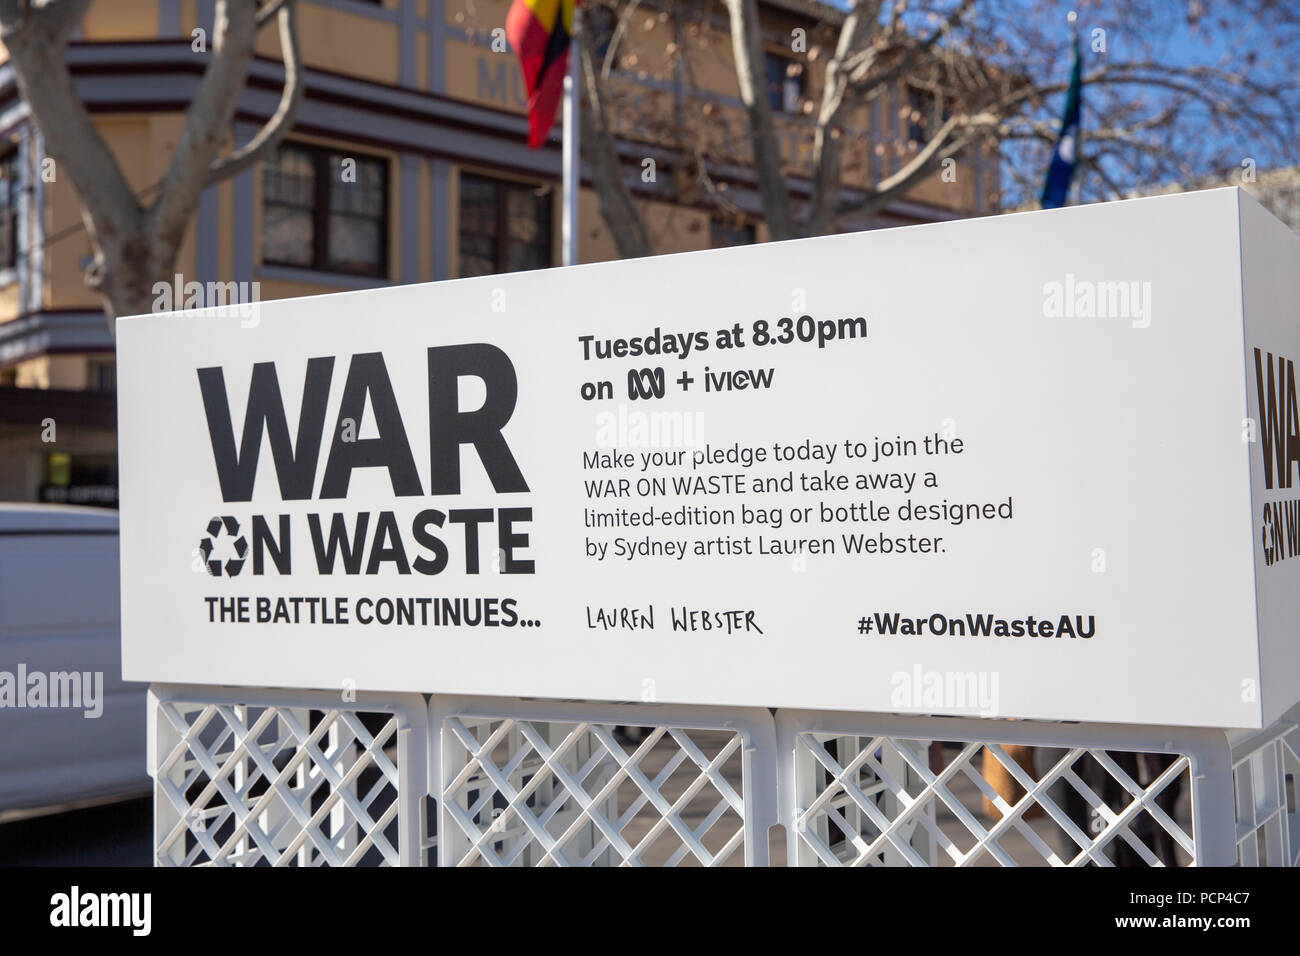 War on Waste an australian television program visits Parramatta to promote the recycling message and help people to reduce waste,Sydney,Australia - Stock Image